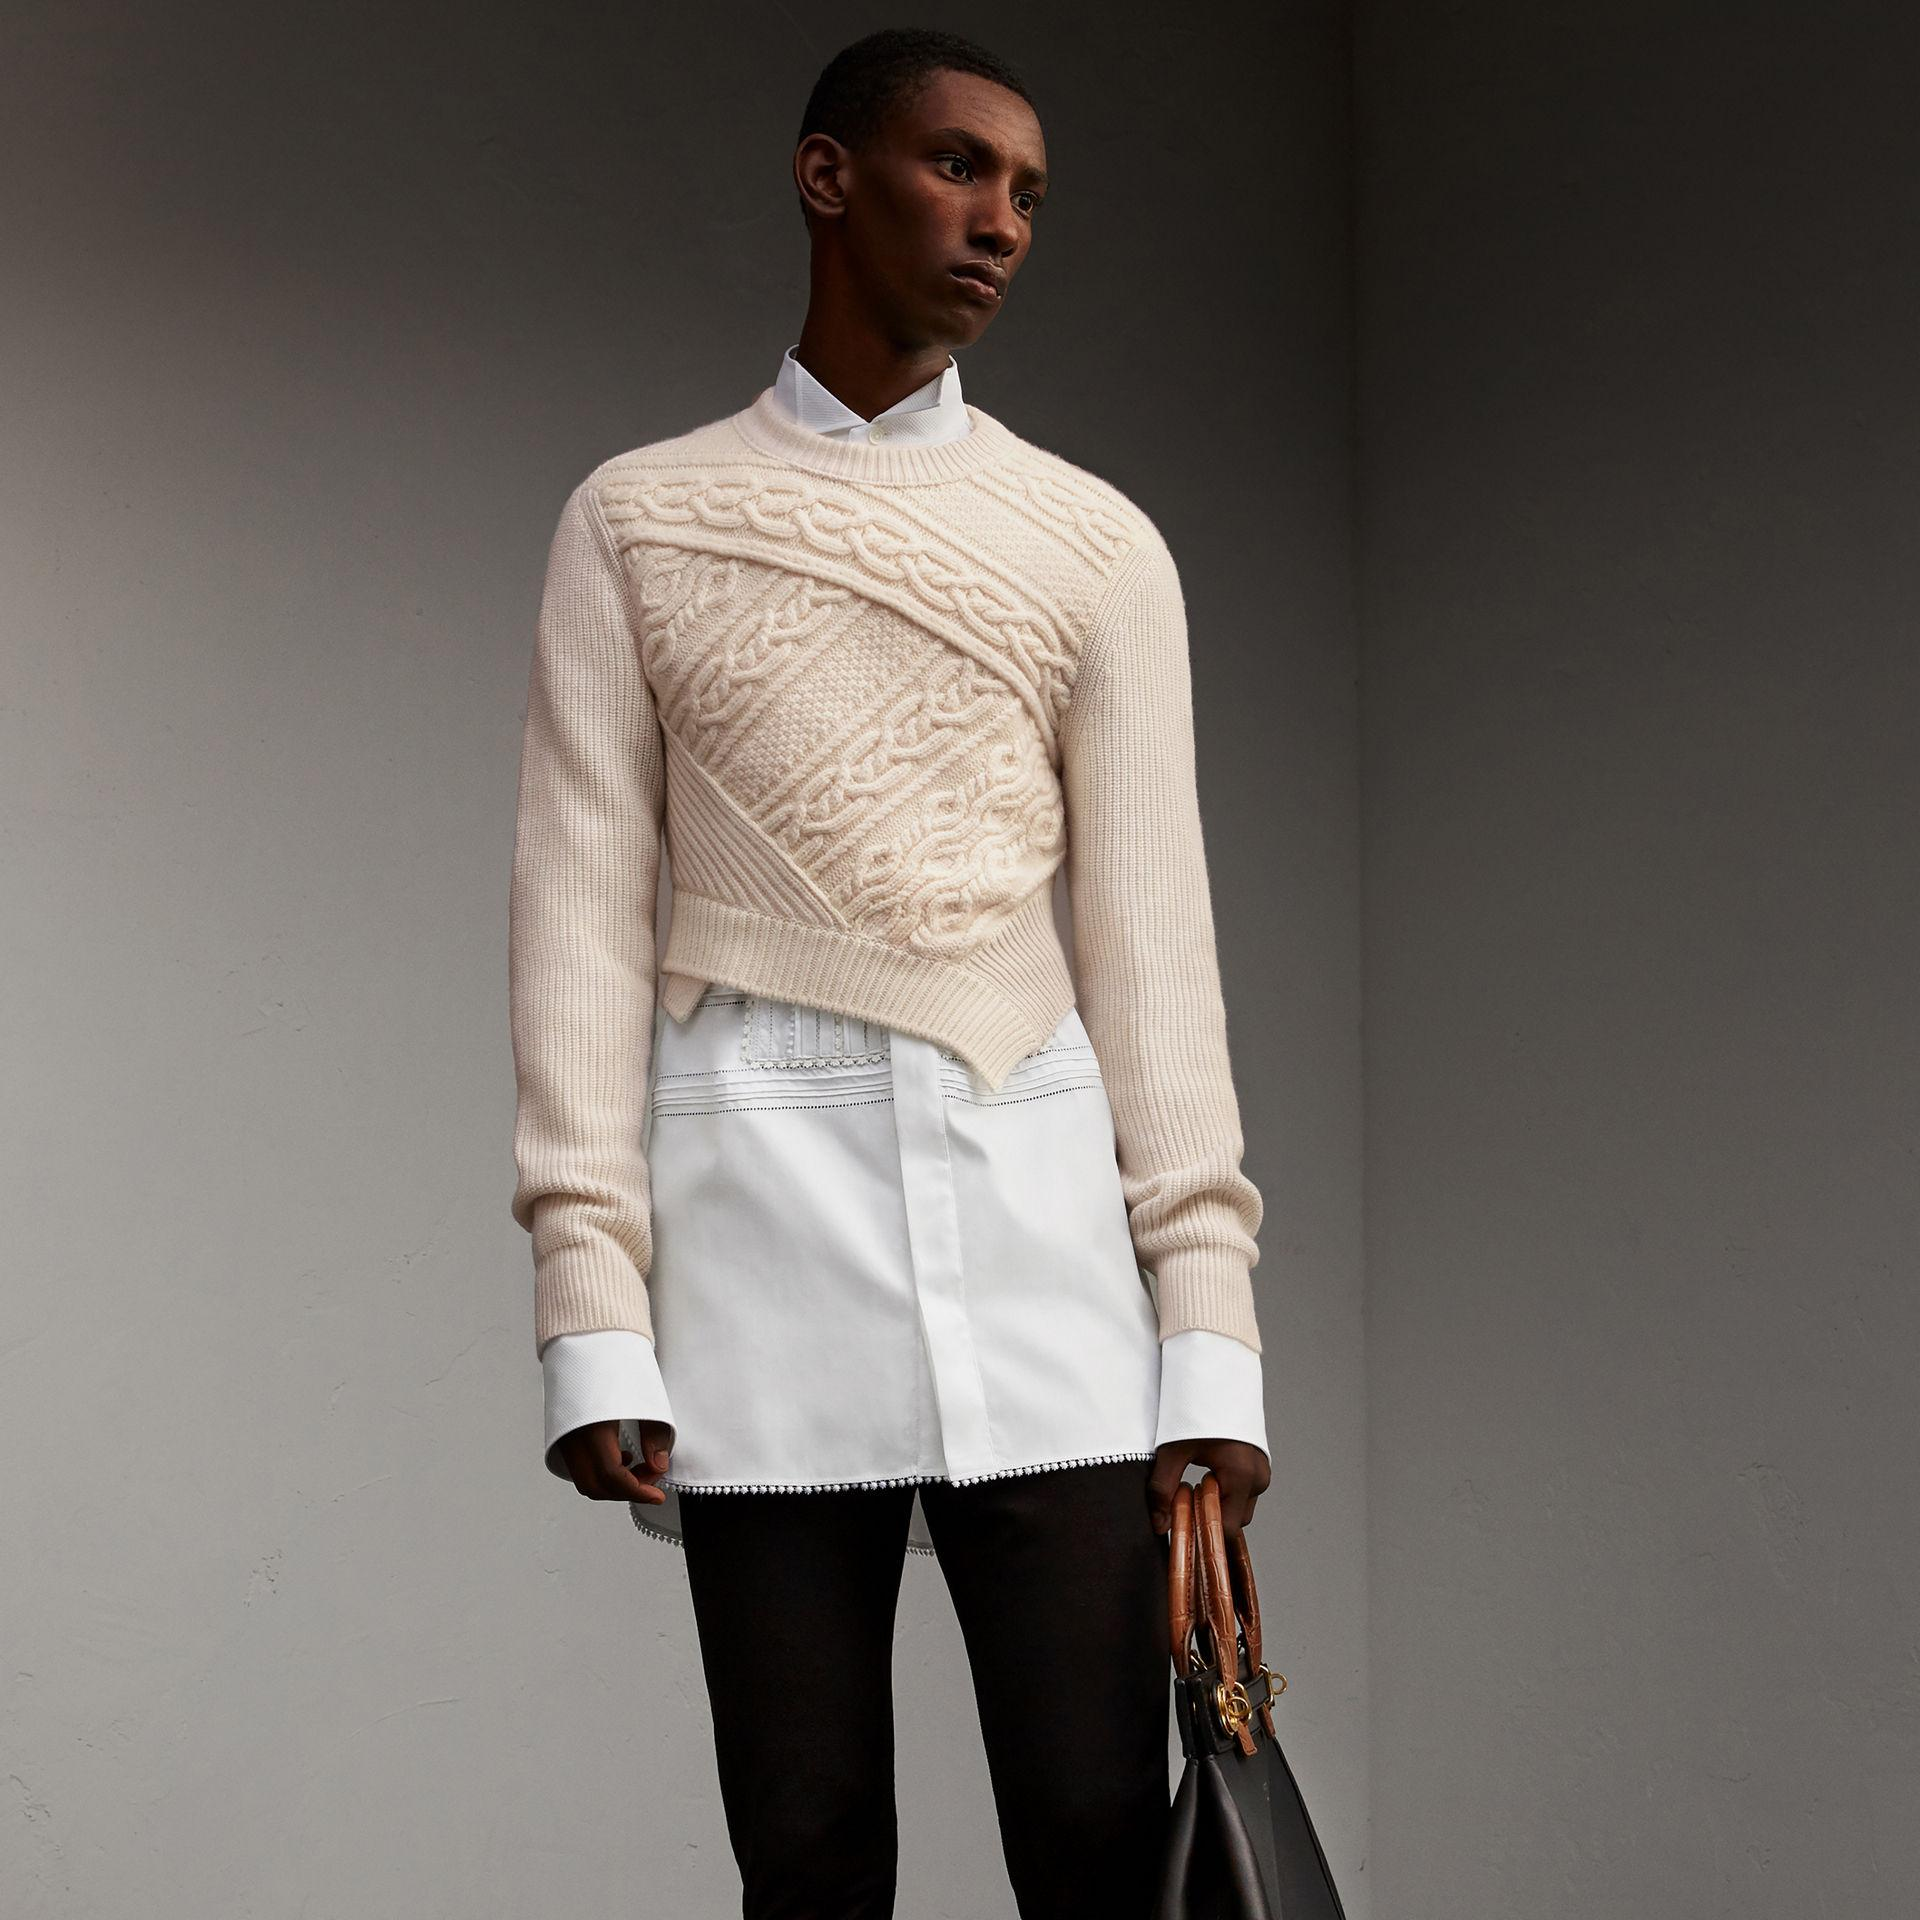 843252d957f Burberry Cable Knit Cashmere Wool Cropped Sweater in Natural